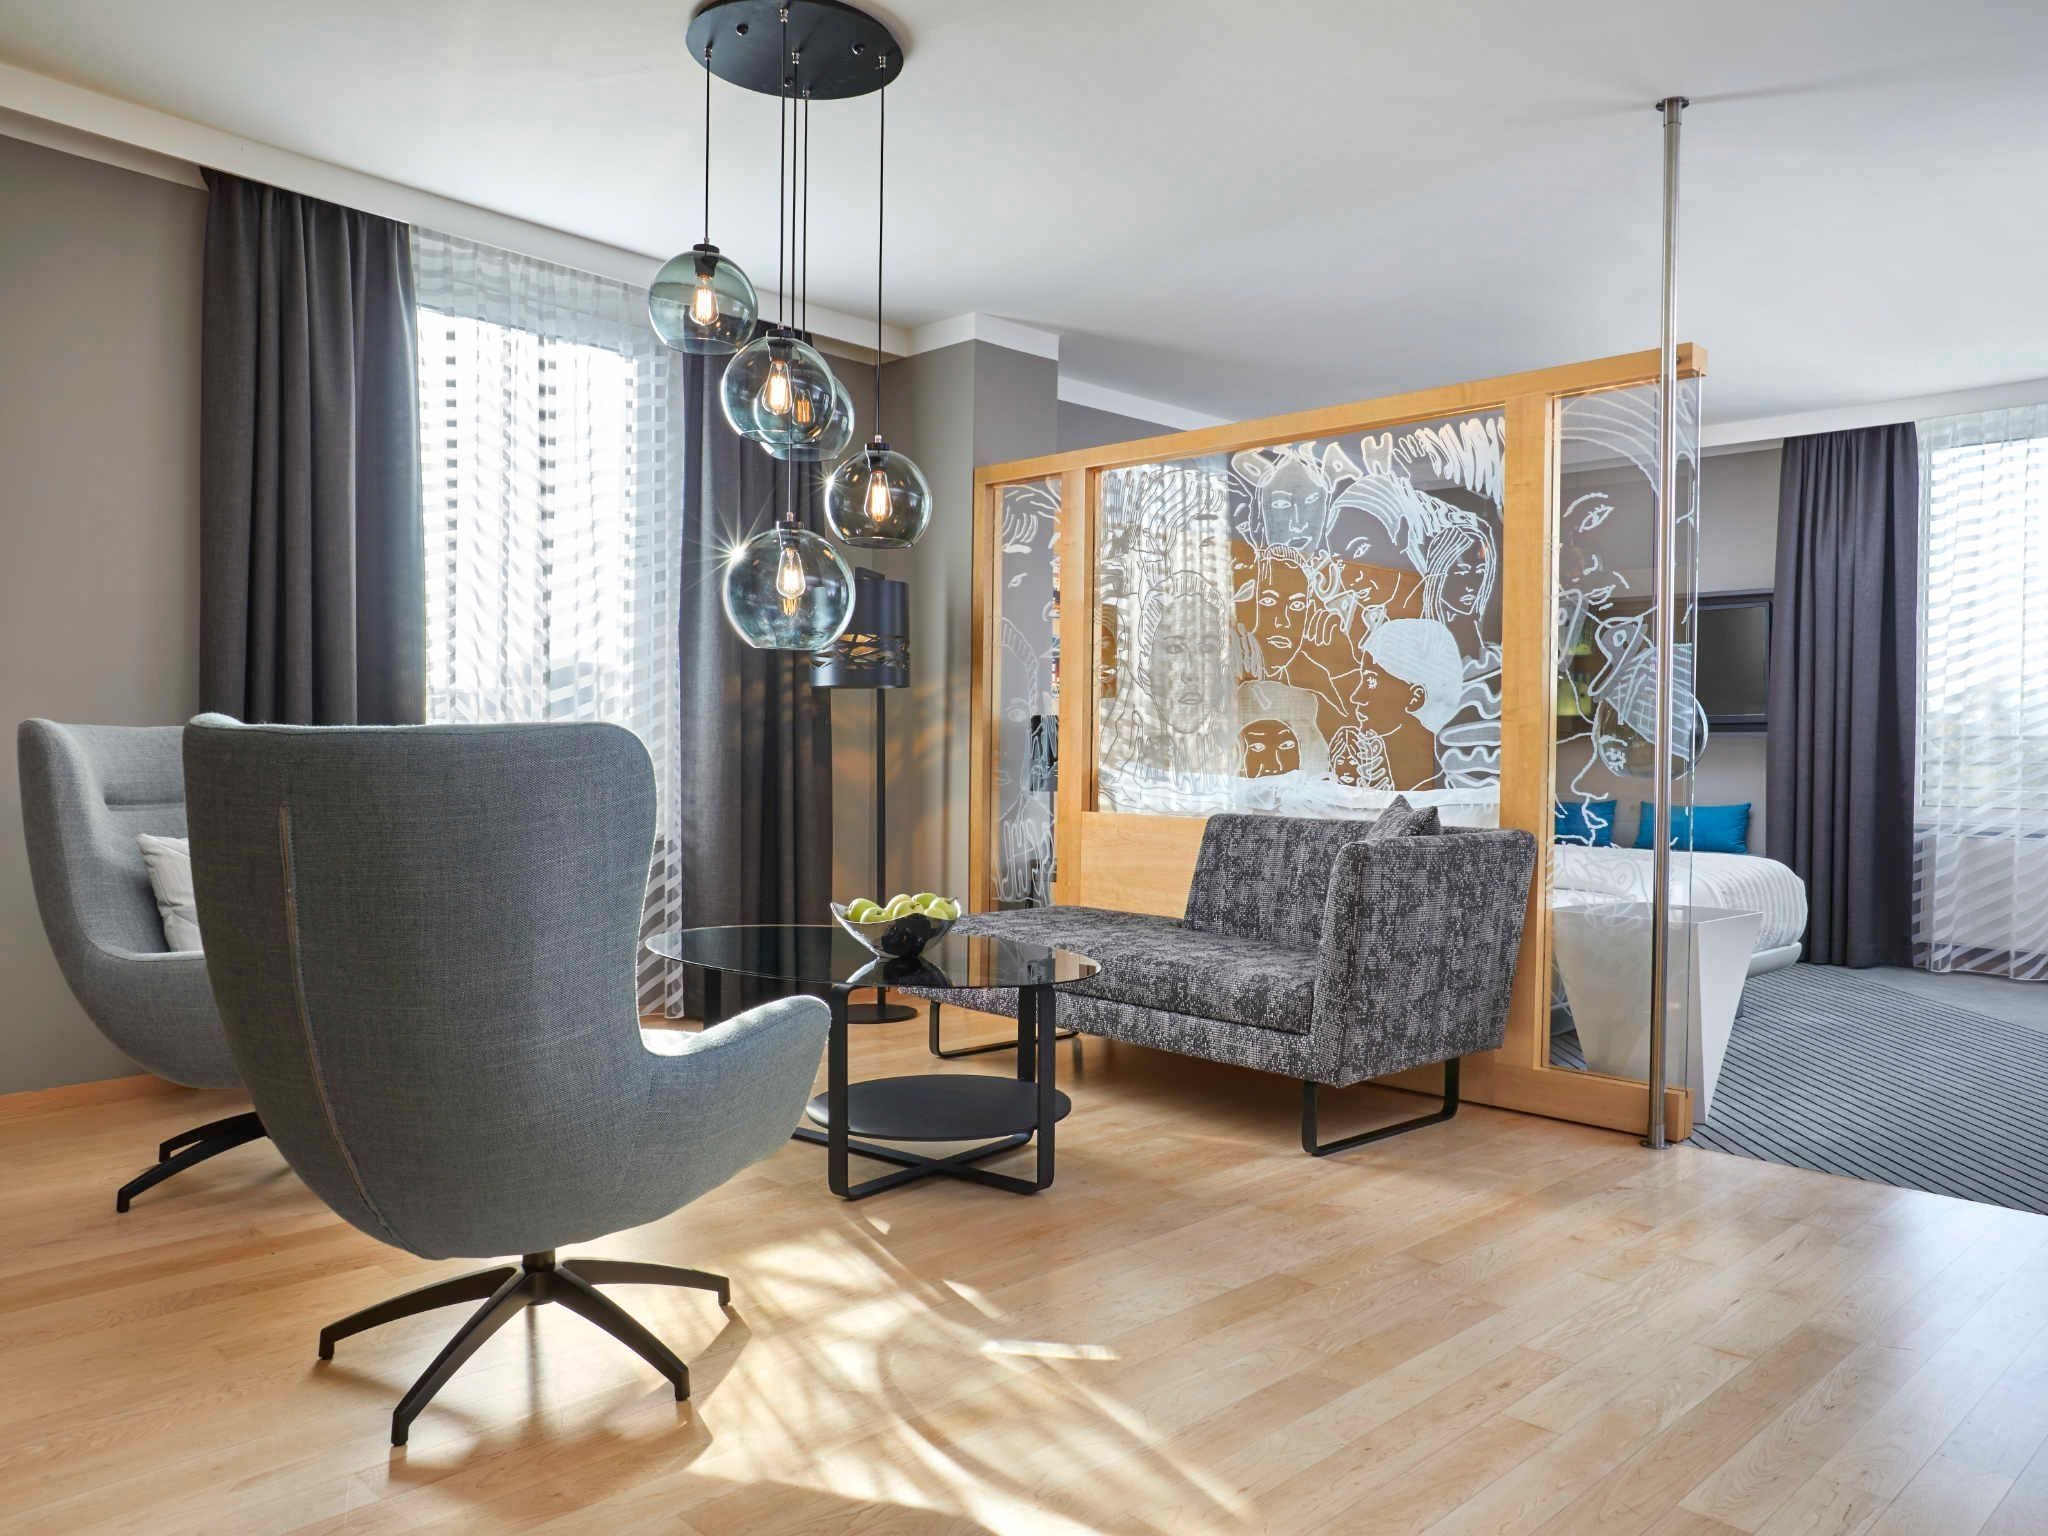 Where to stay in Hamburg - Le Meridien Hotel - Junior Suites